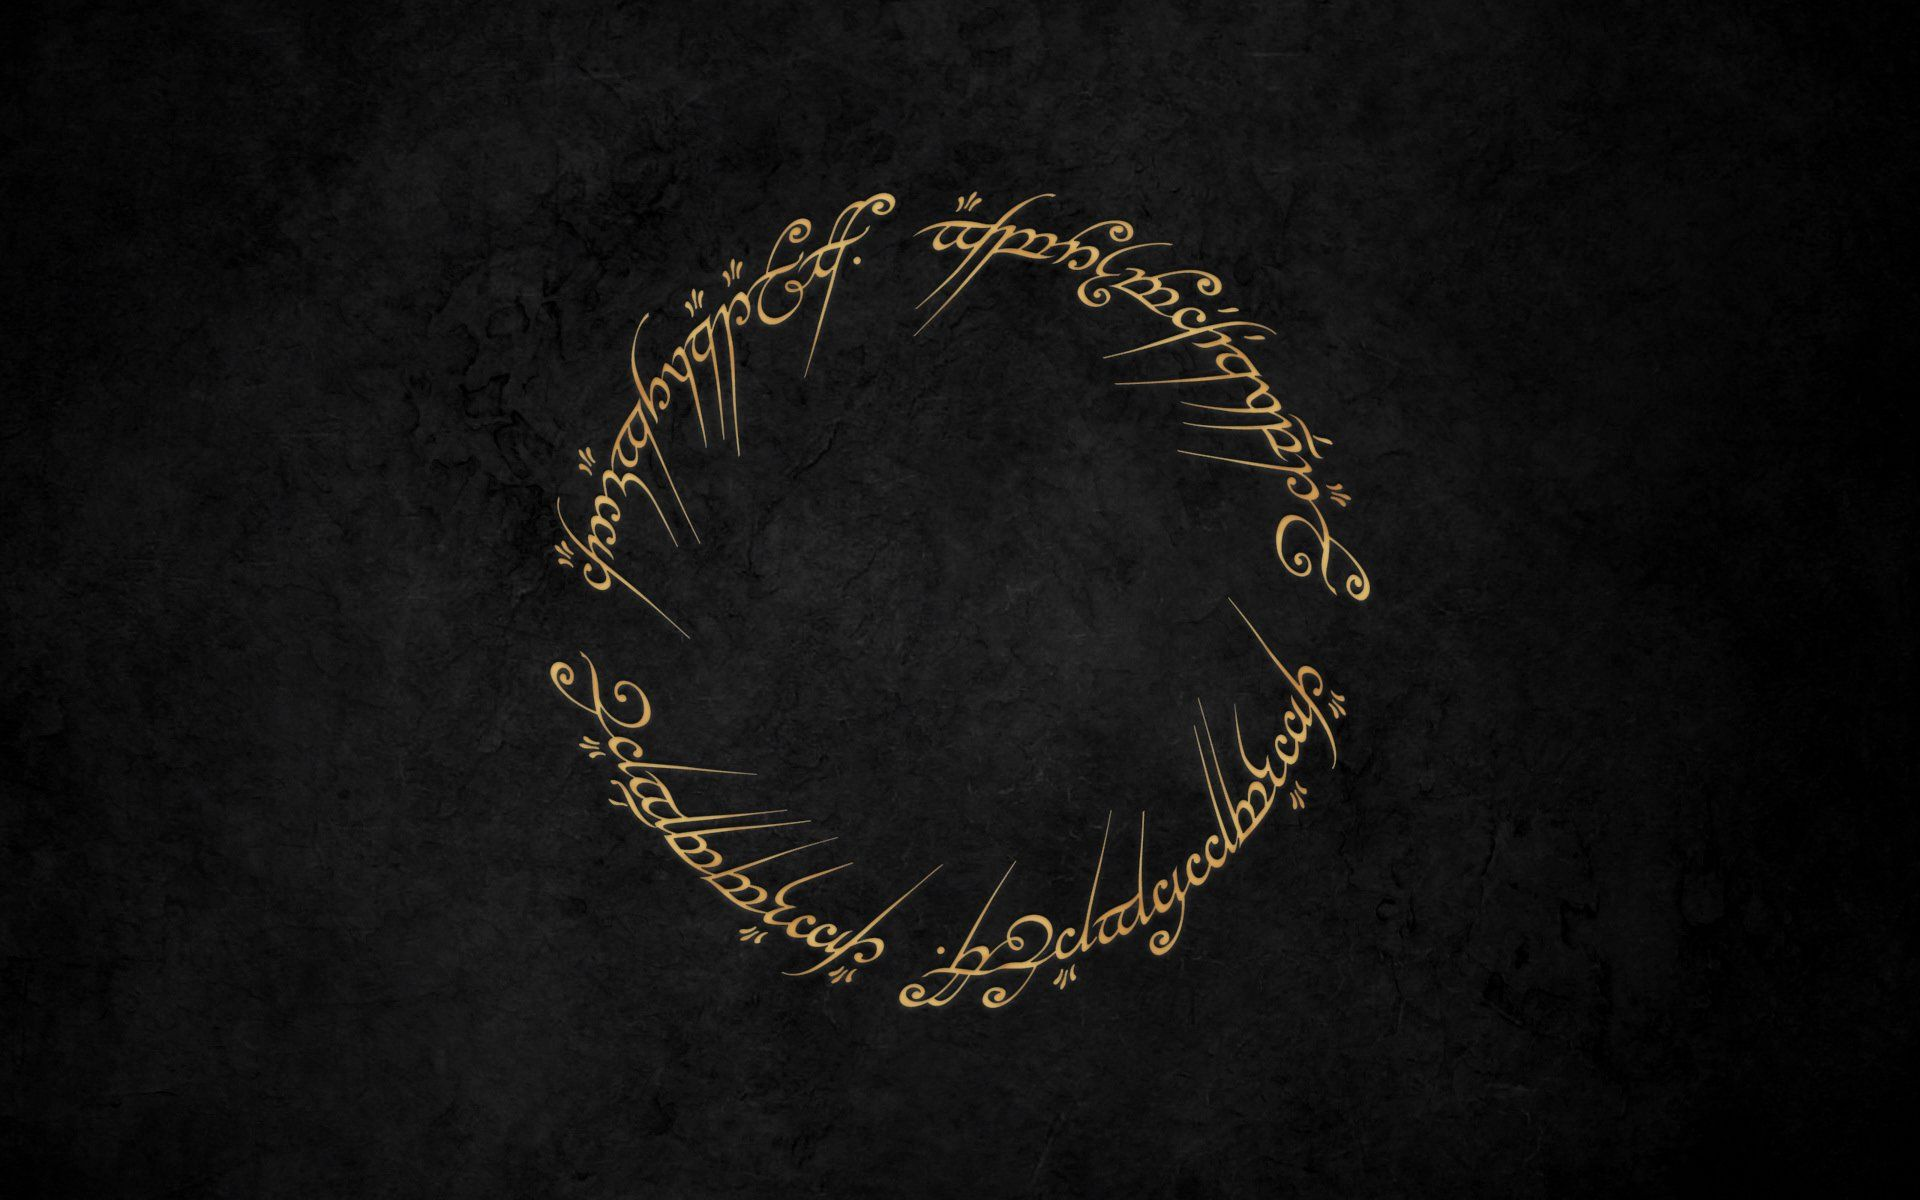 Lord Of The Rings Wallpaper 21 1920 X 1200 Stmed Net Lord Of The Rings One Ring The Hobbit